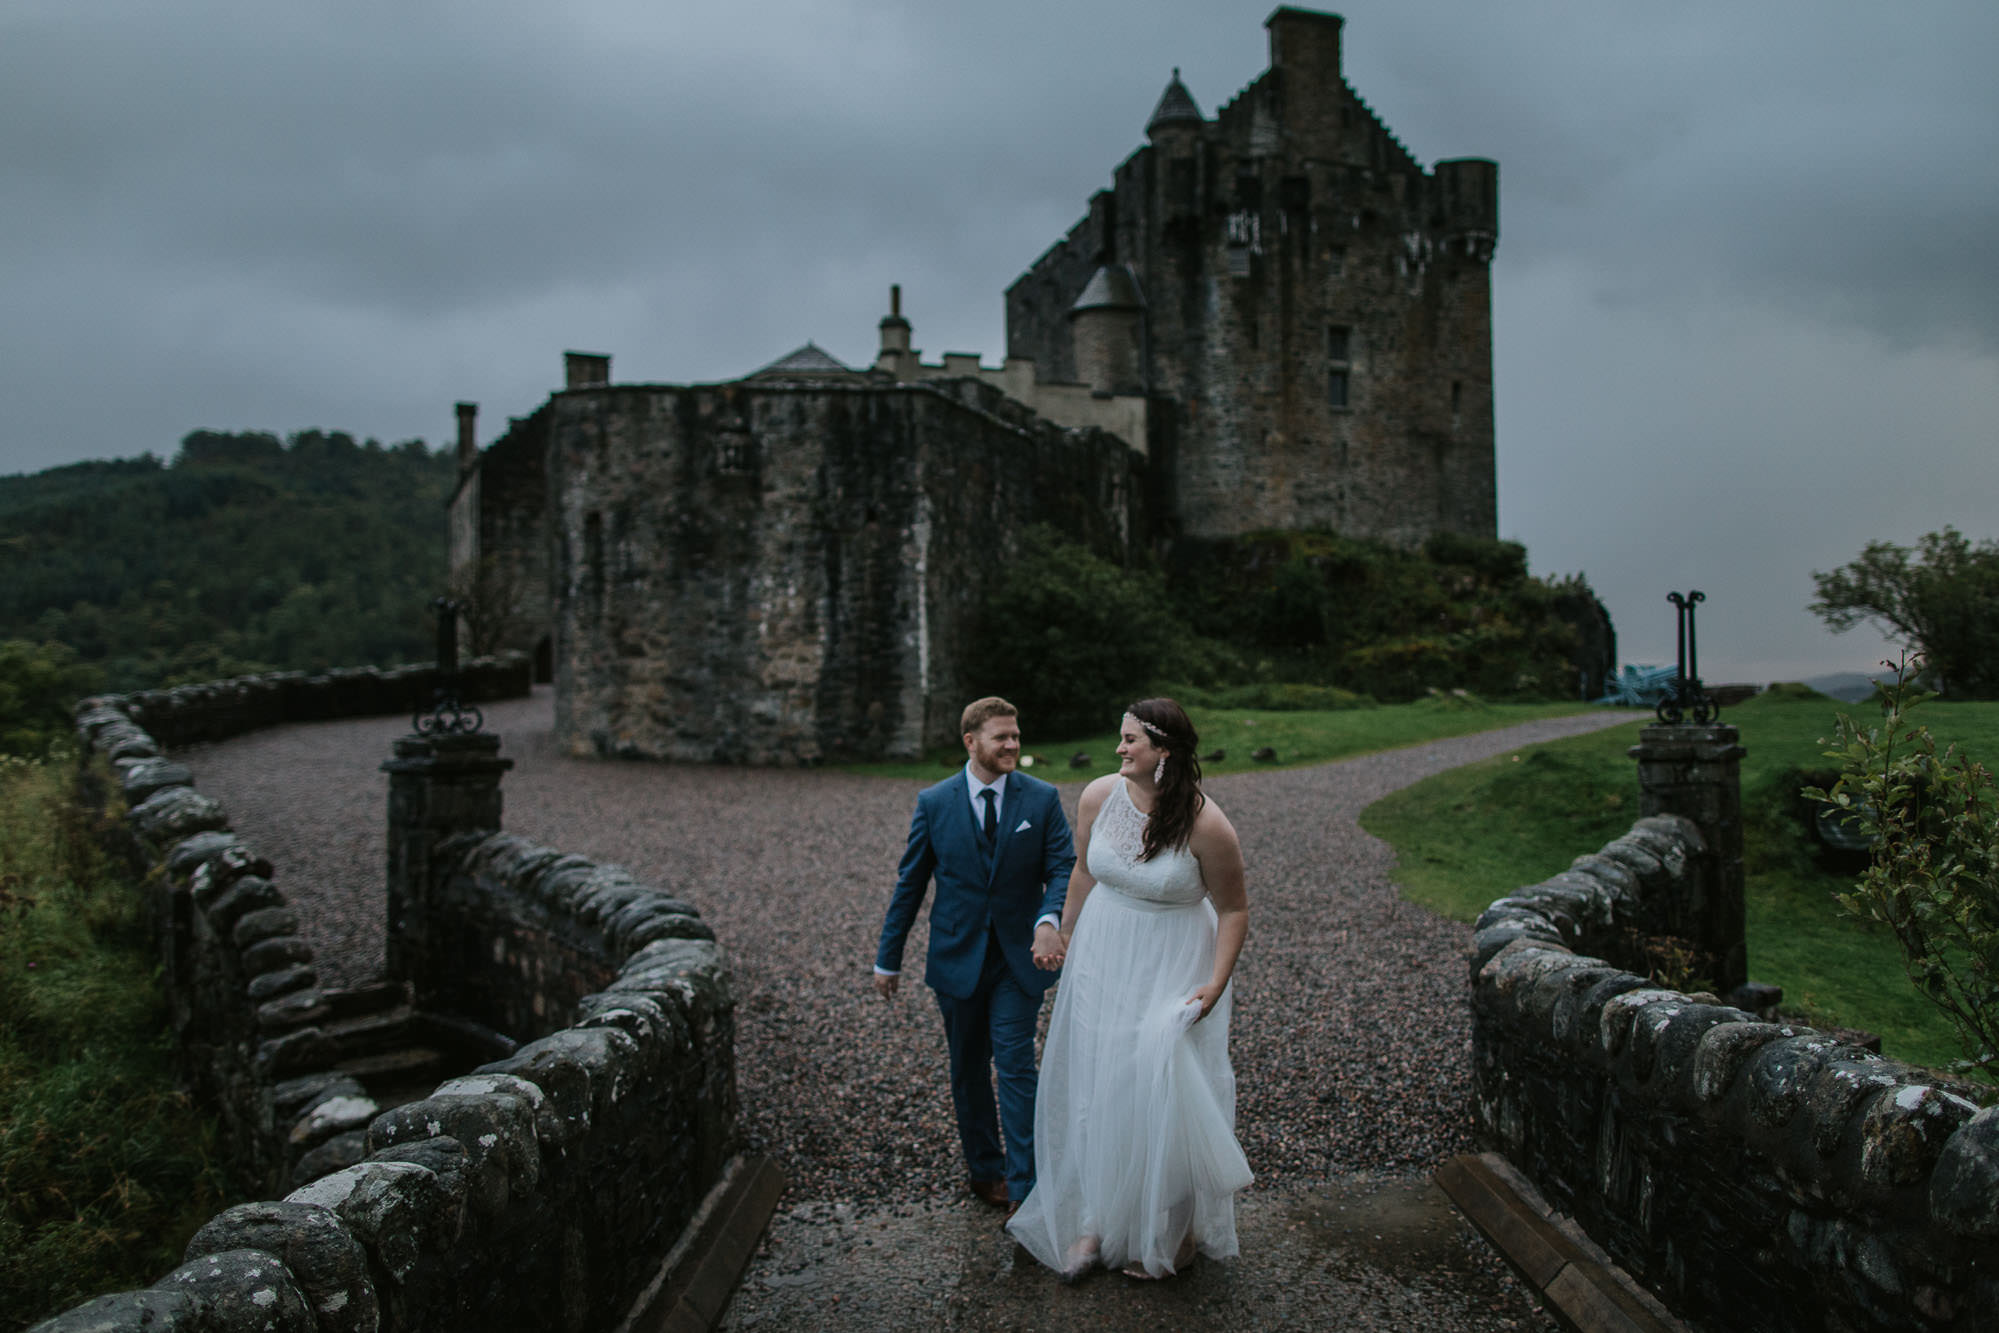 eilean-donan-castle-scotland-elopement-destination-wedding-photographer